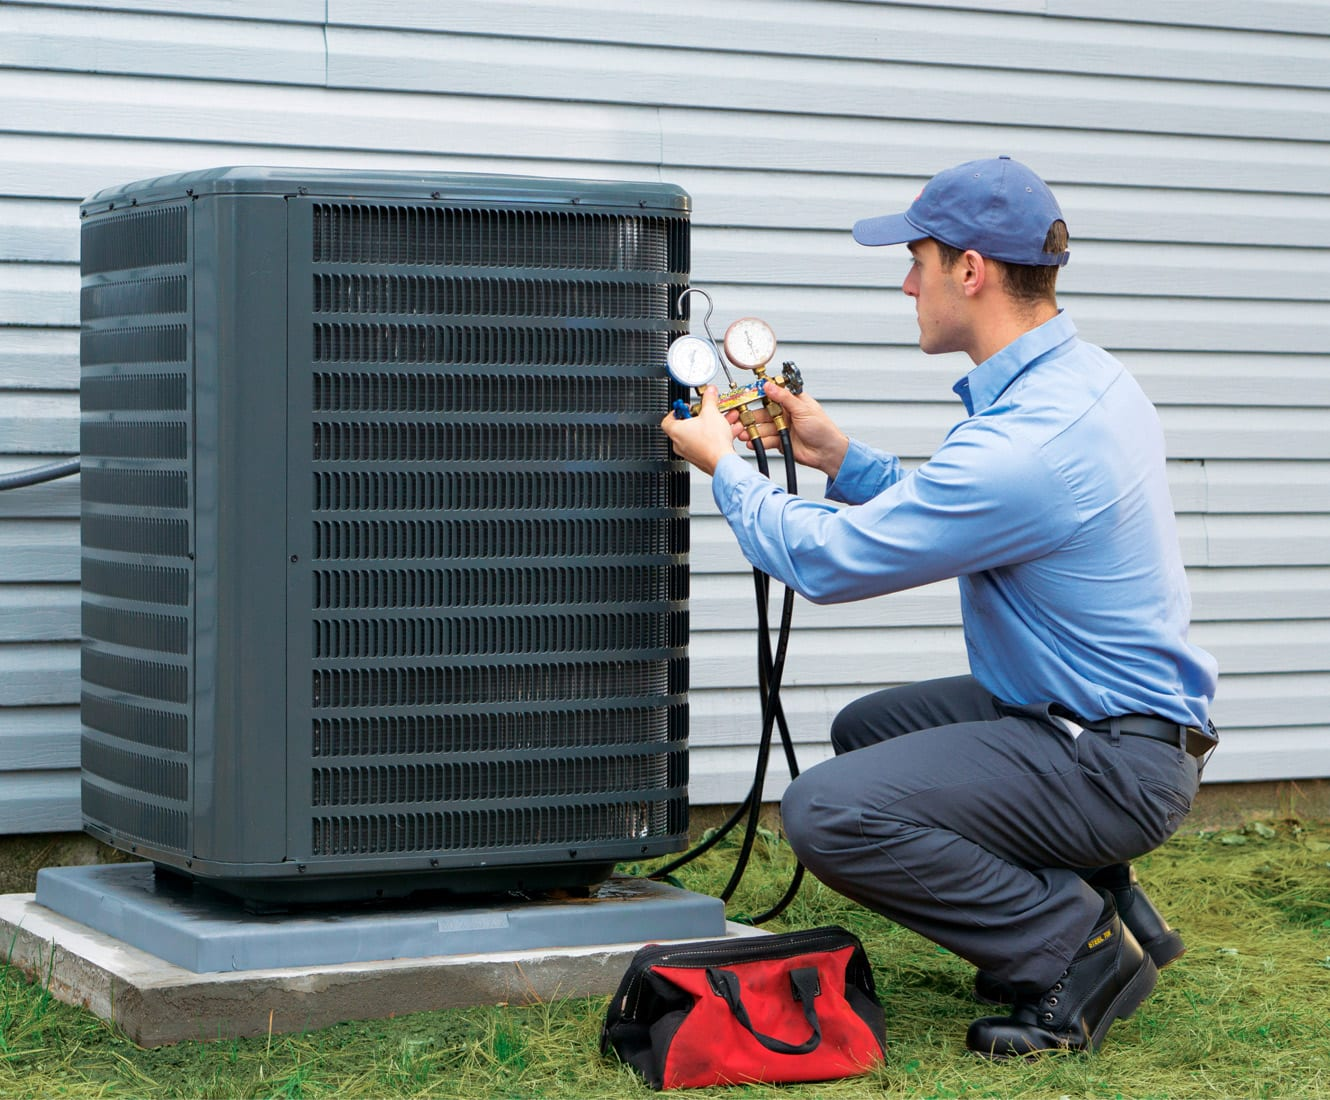 Sila technician performing AC tune-up